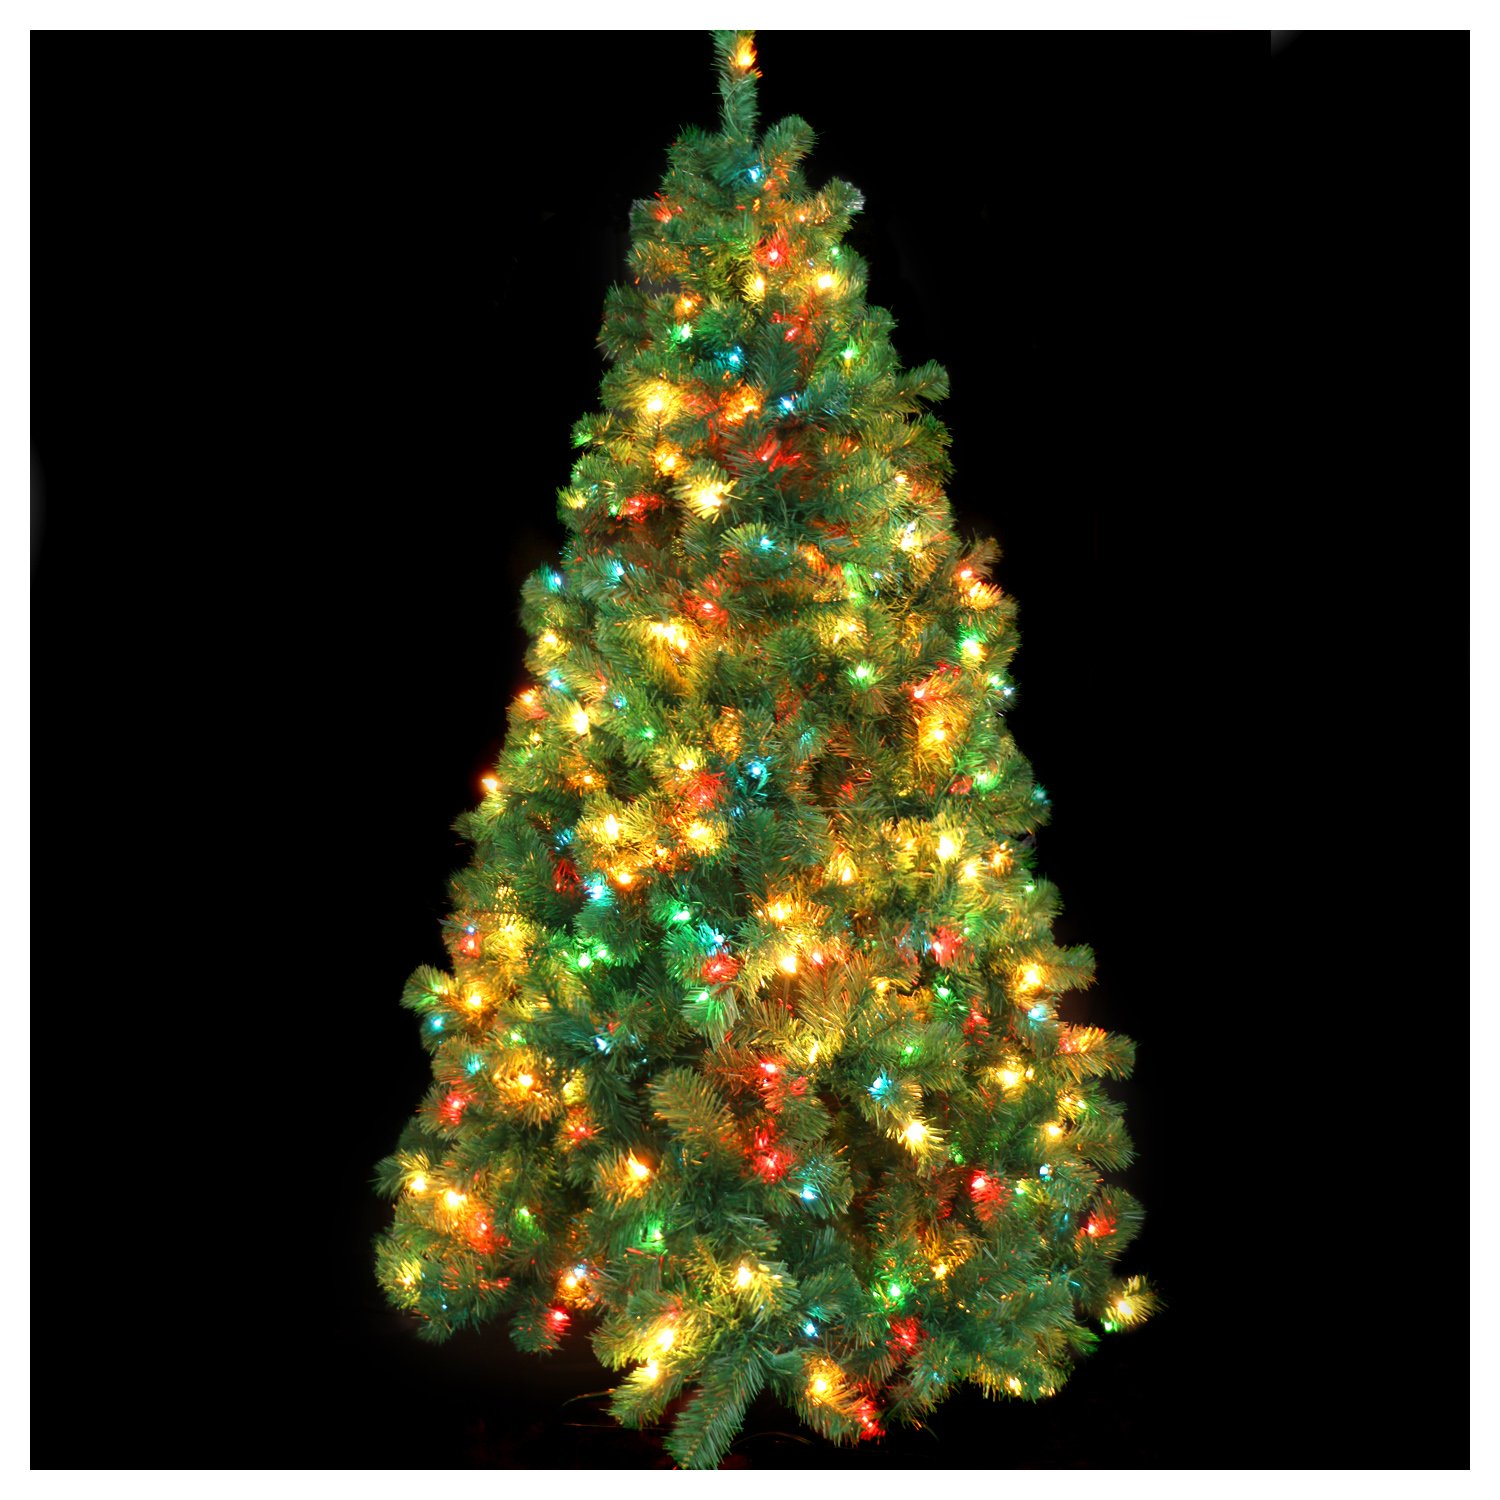 Amazon.com: CASA CLAUSI Christmas Tree 6 1/2 Feet Pre-lit Multi ...